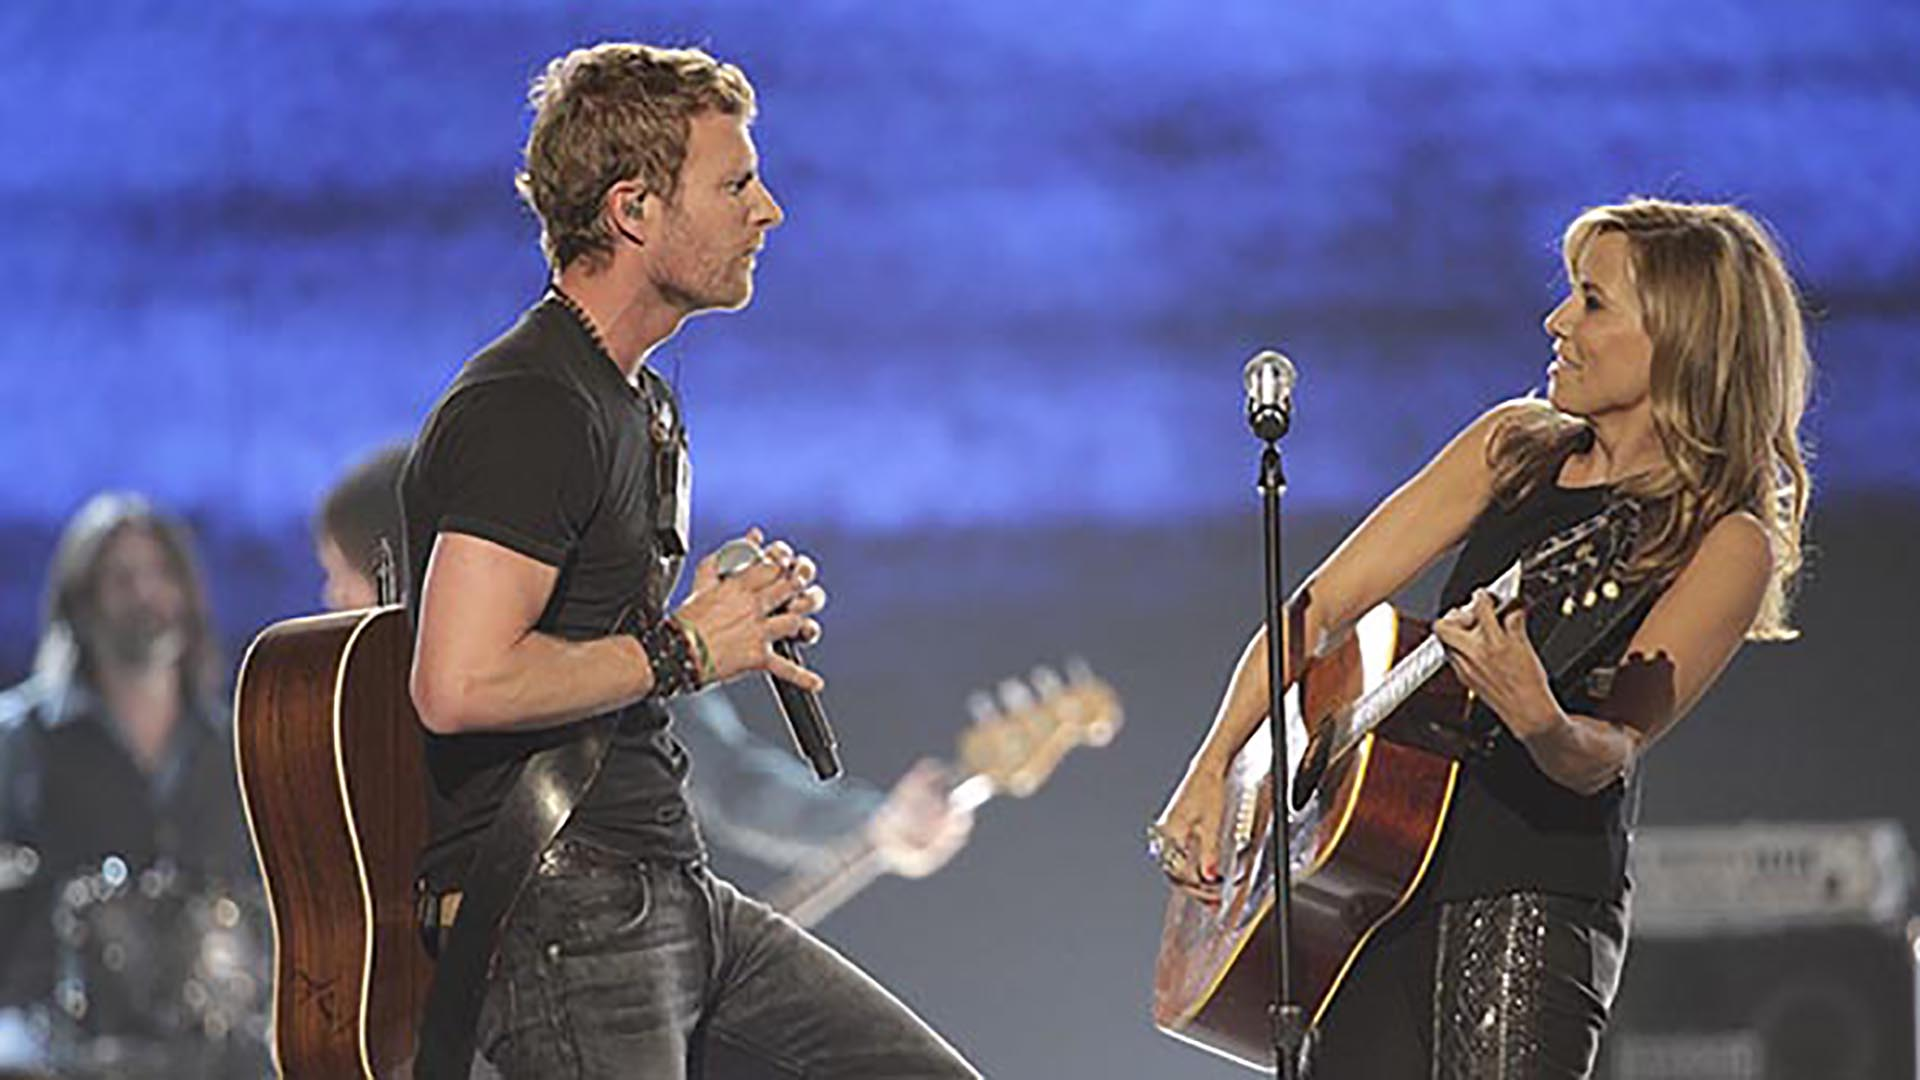 32. Dierks Bentley and Sheryl Crow perform